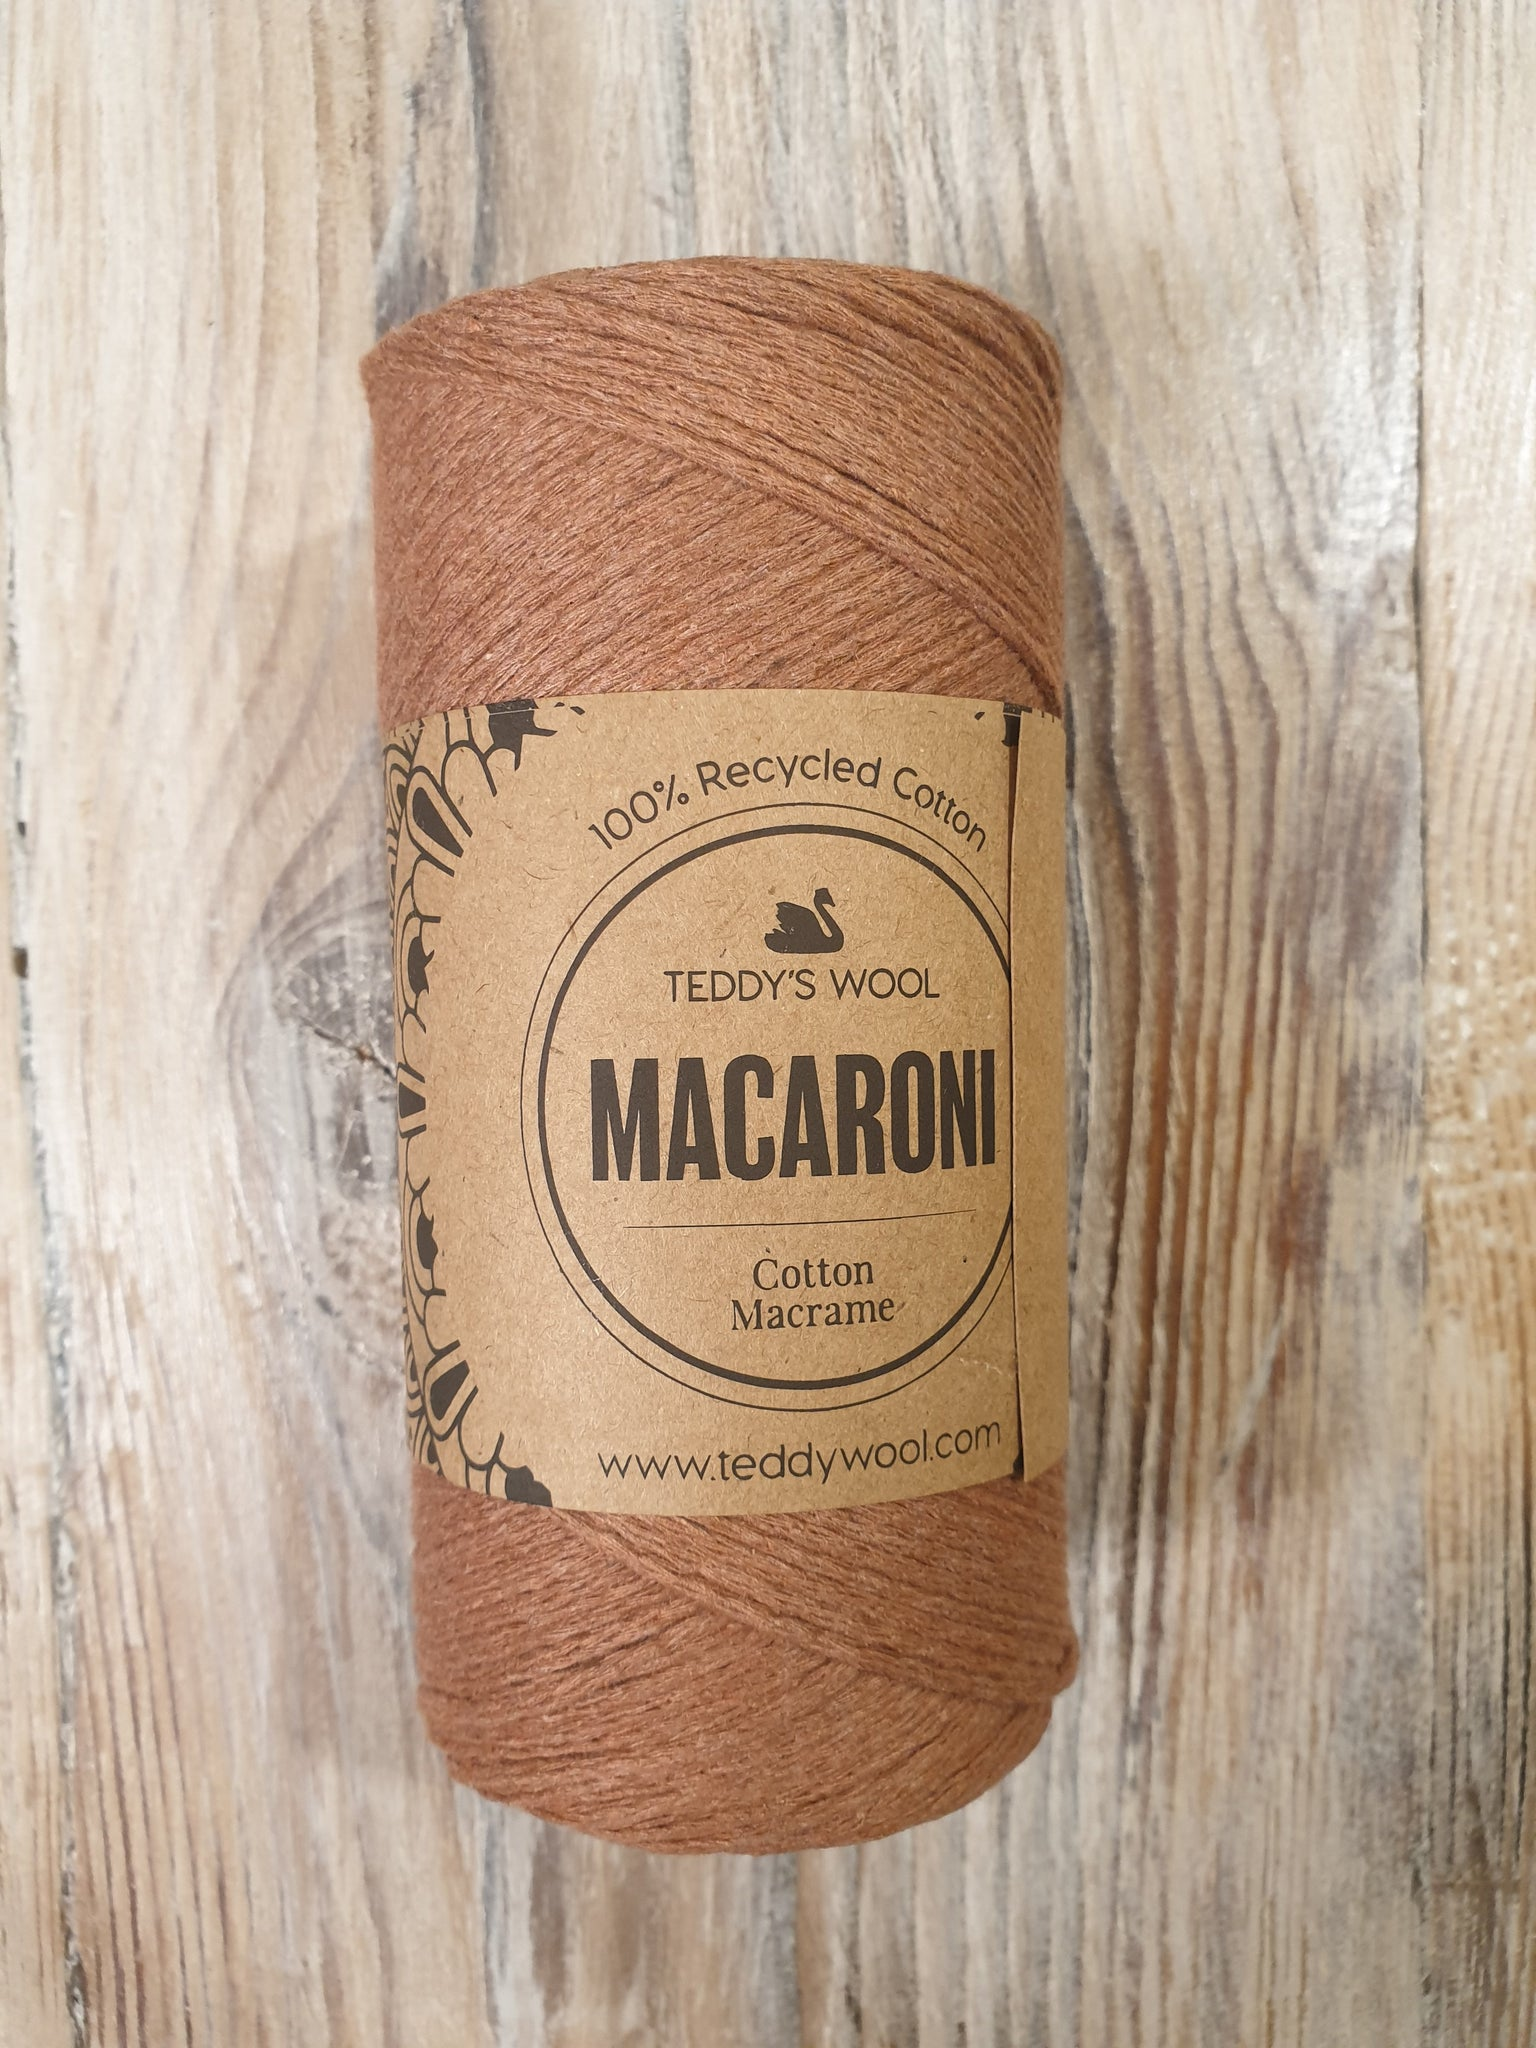 Macaroni Cotton Macrame - חום ורדרד